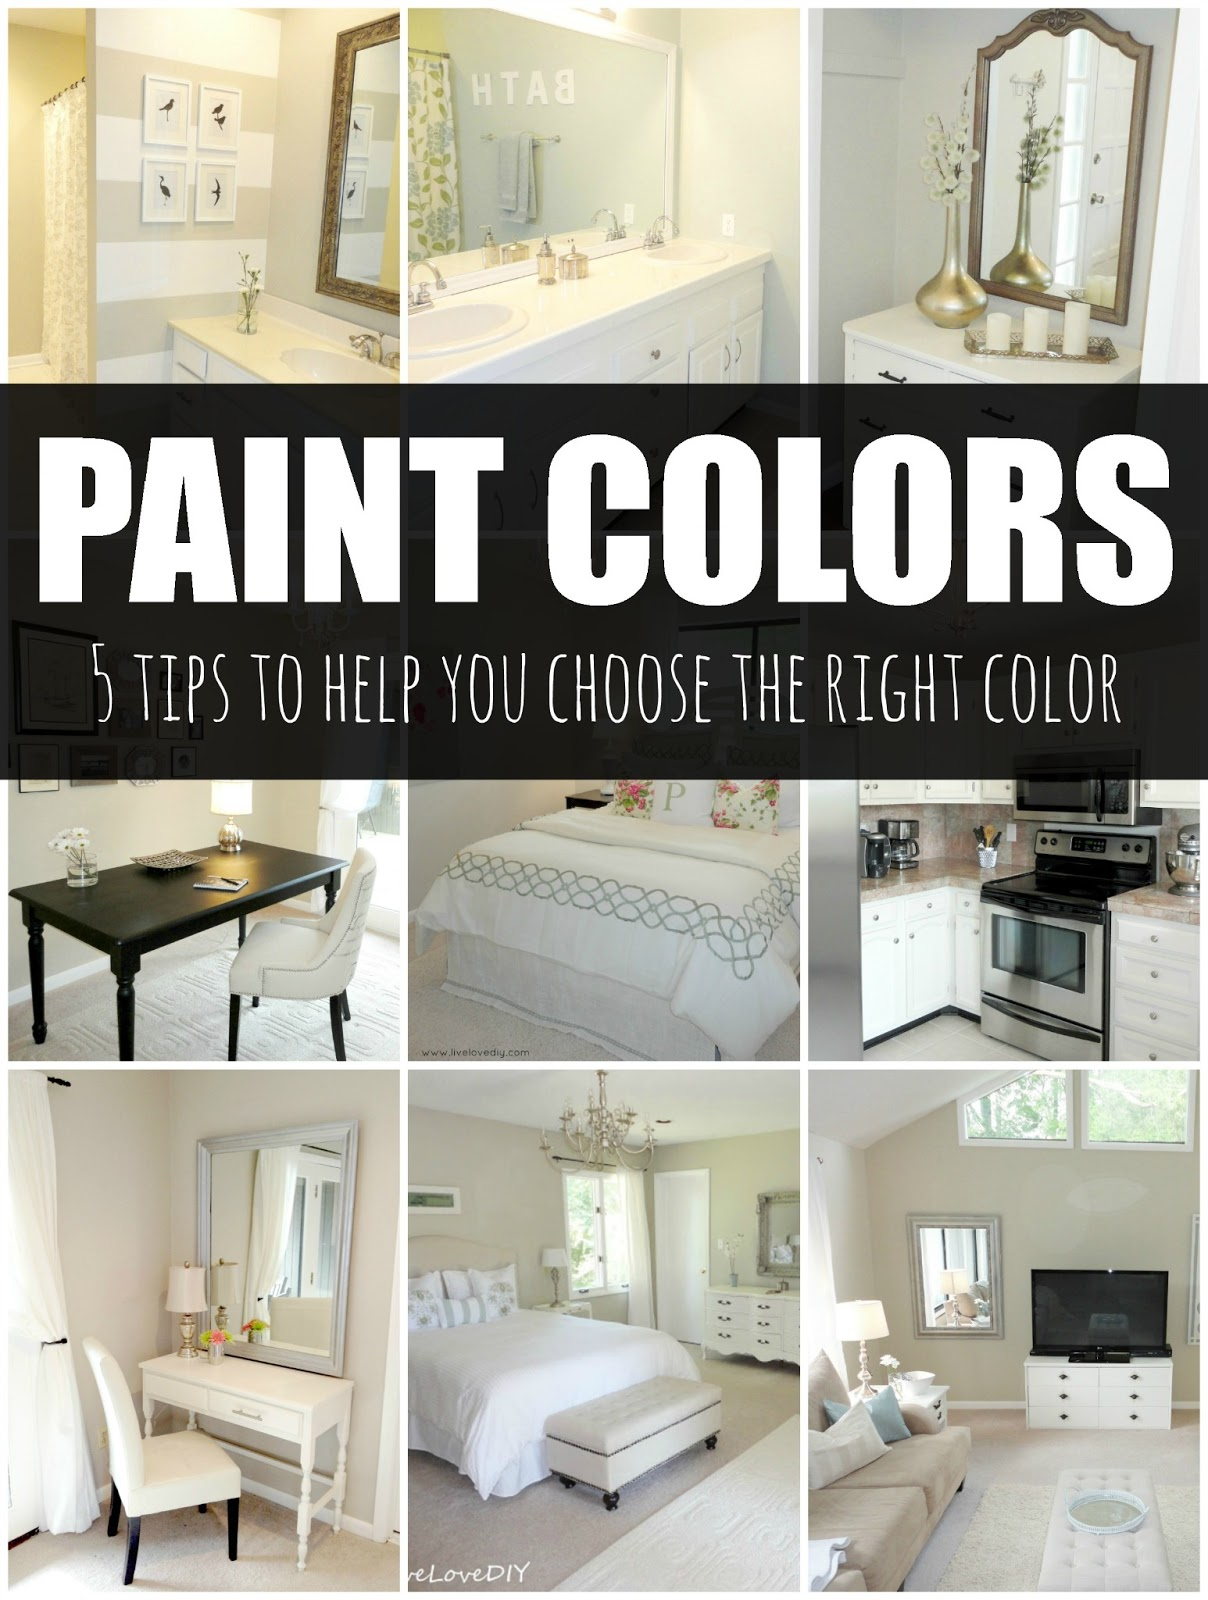 How To Pick Paint Colors Entrancing With How to Choose Room Paint Colors Image